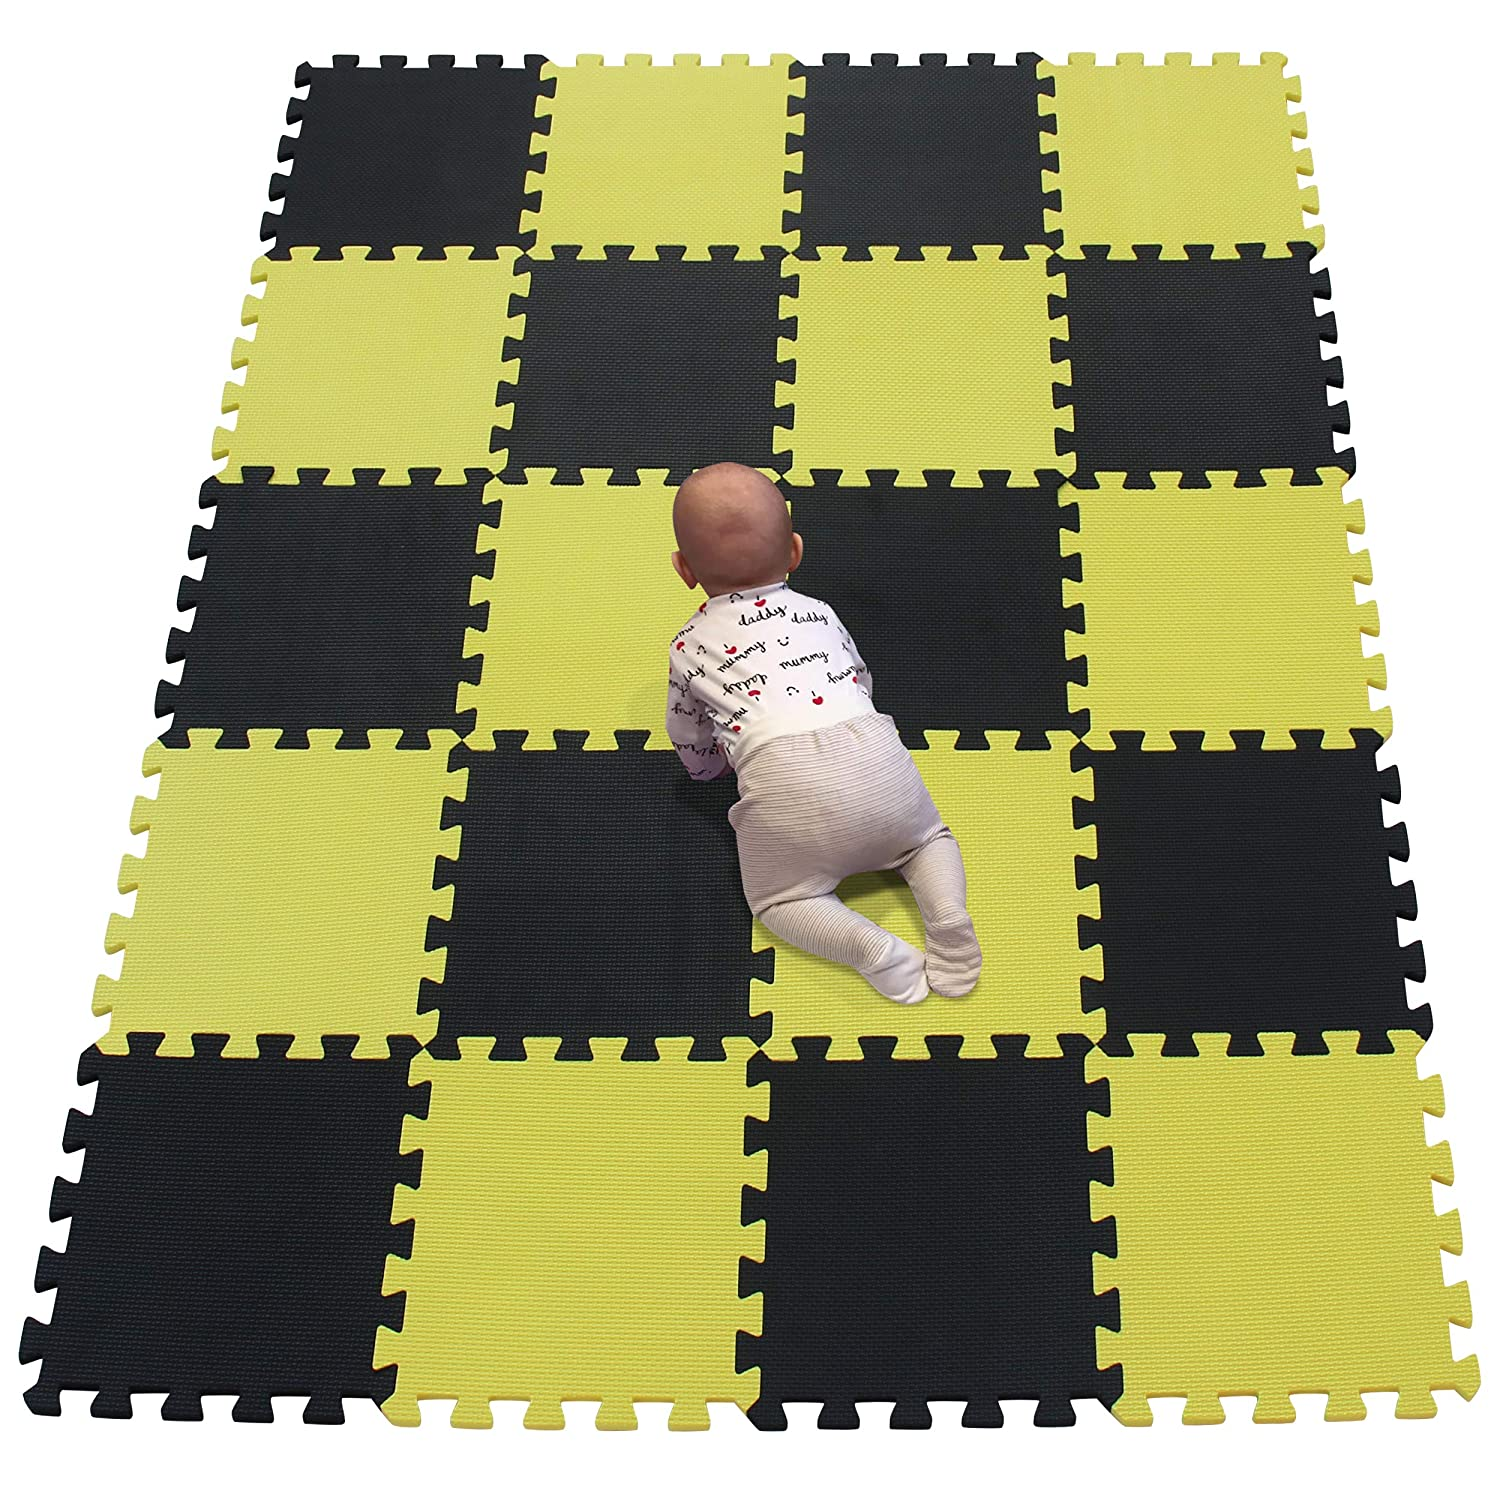 YIMINYUER Store 20Pc 30 x 1cm Popular products 10mm Playmat Floor Kids Ma Thicknes